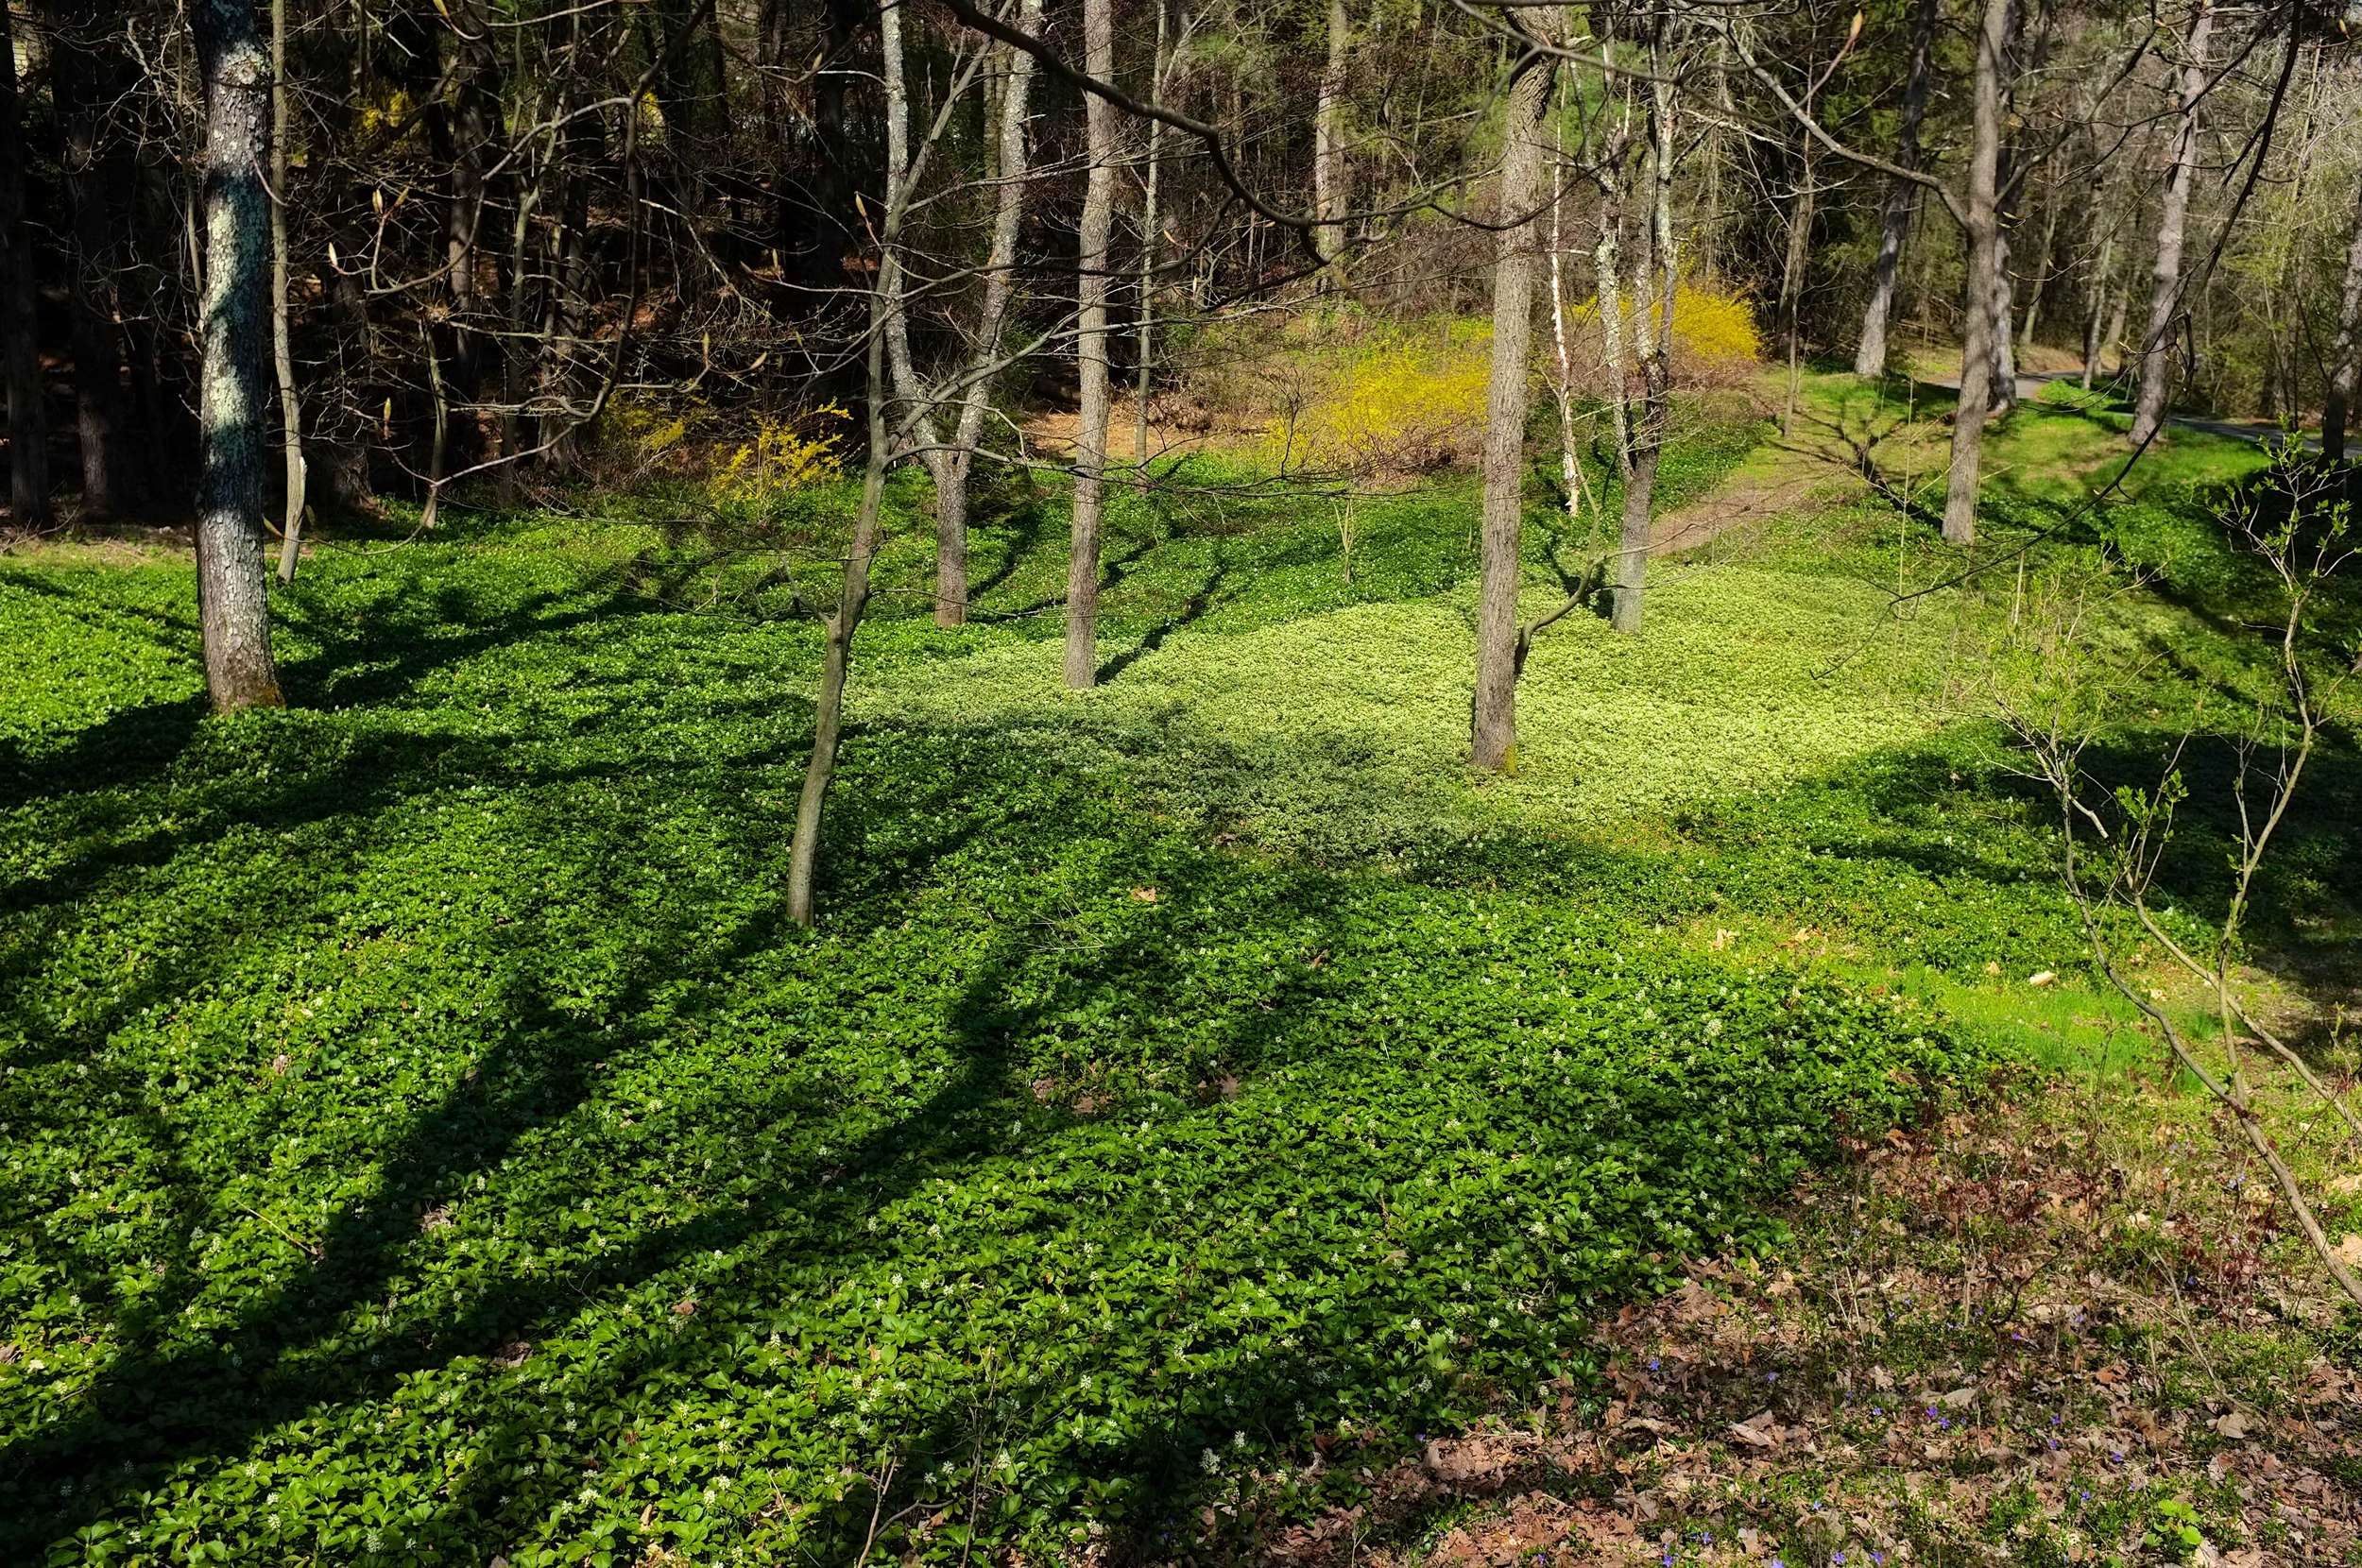 Panorama - JW Pachysandra Plants Ground Cover 22.jpg